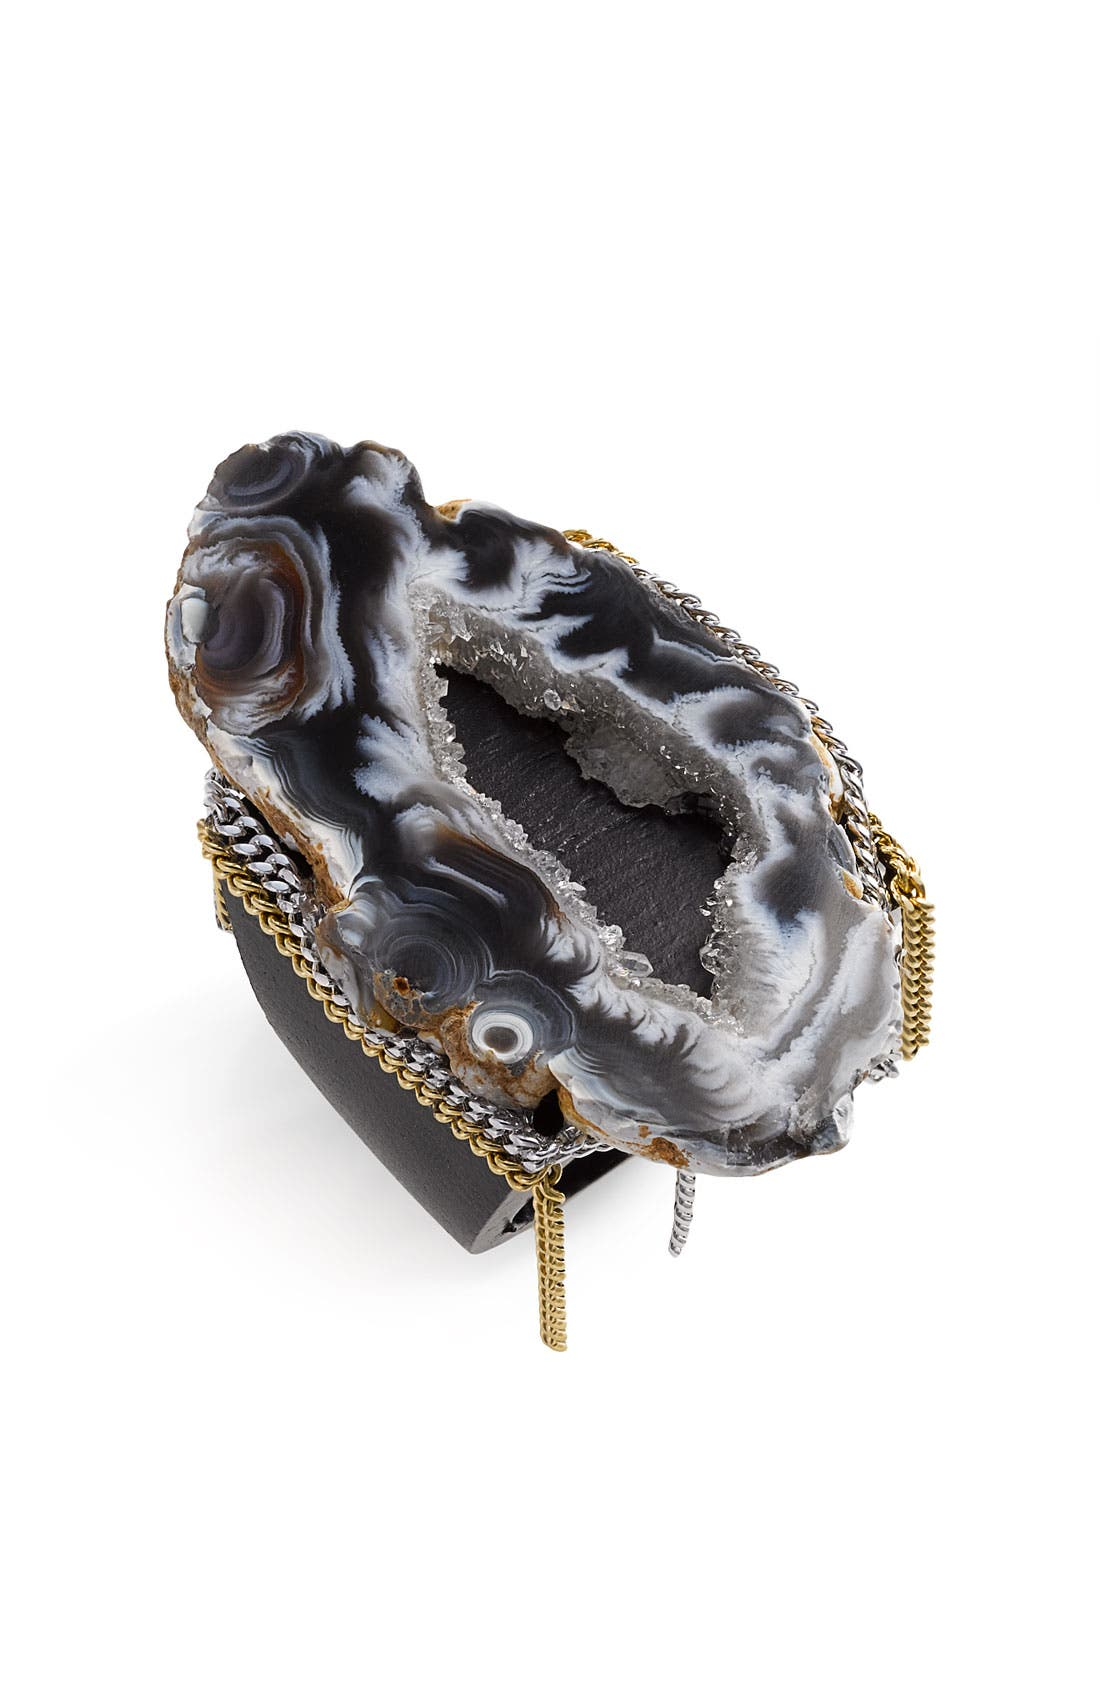 Alternate Image 1 Selected - Liz Larios Jewelry Black Ochoco Agate Ring